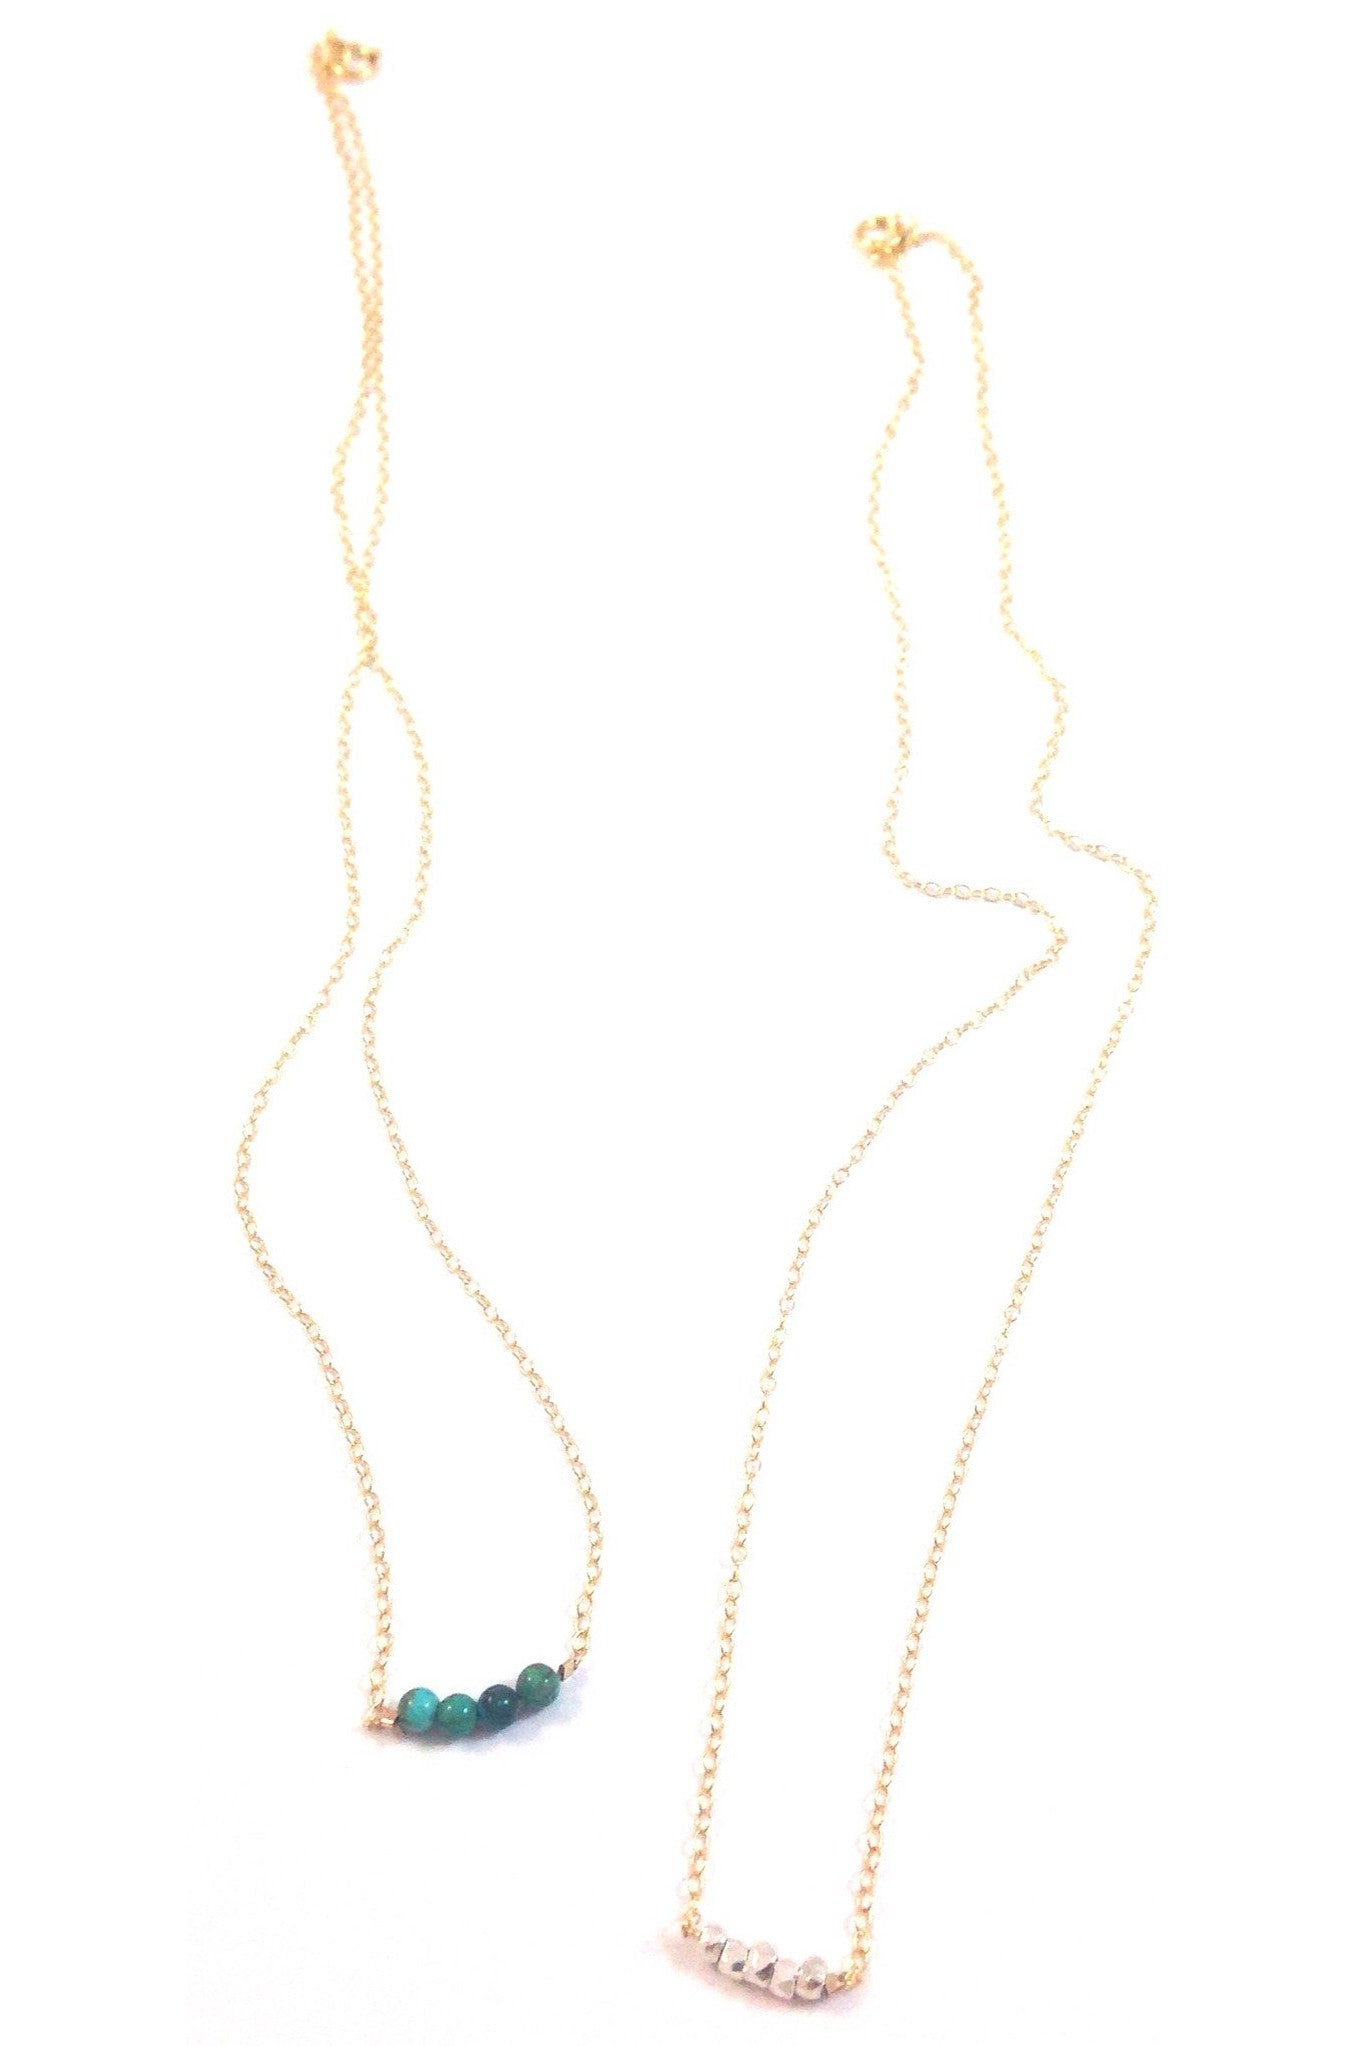 14kt Goldfilled Necklace with stones or beads, $28 | Light Years Jewelry